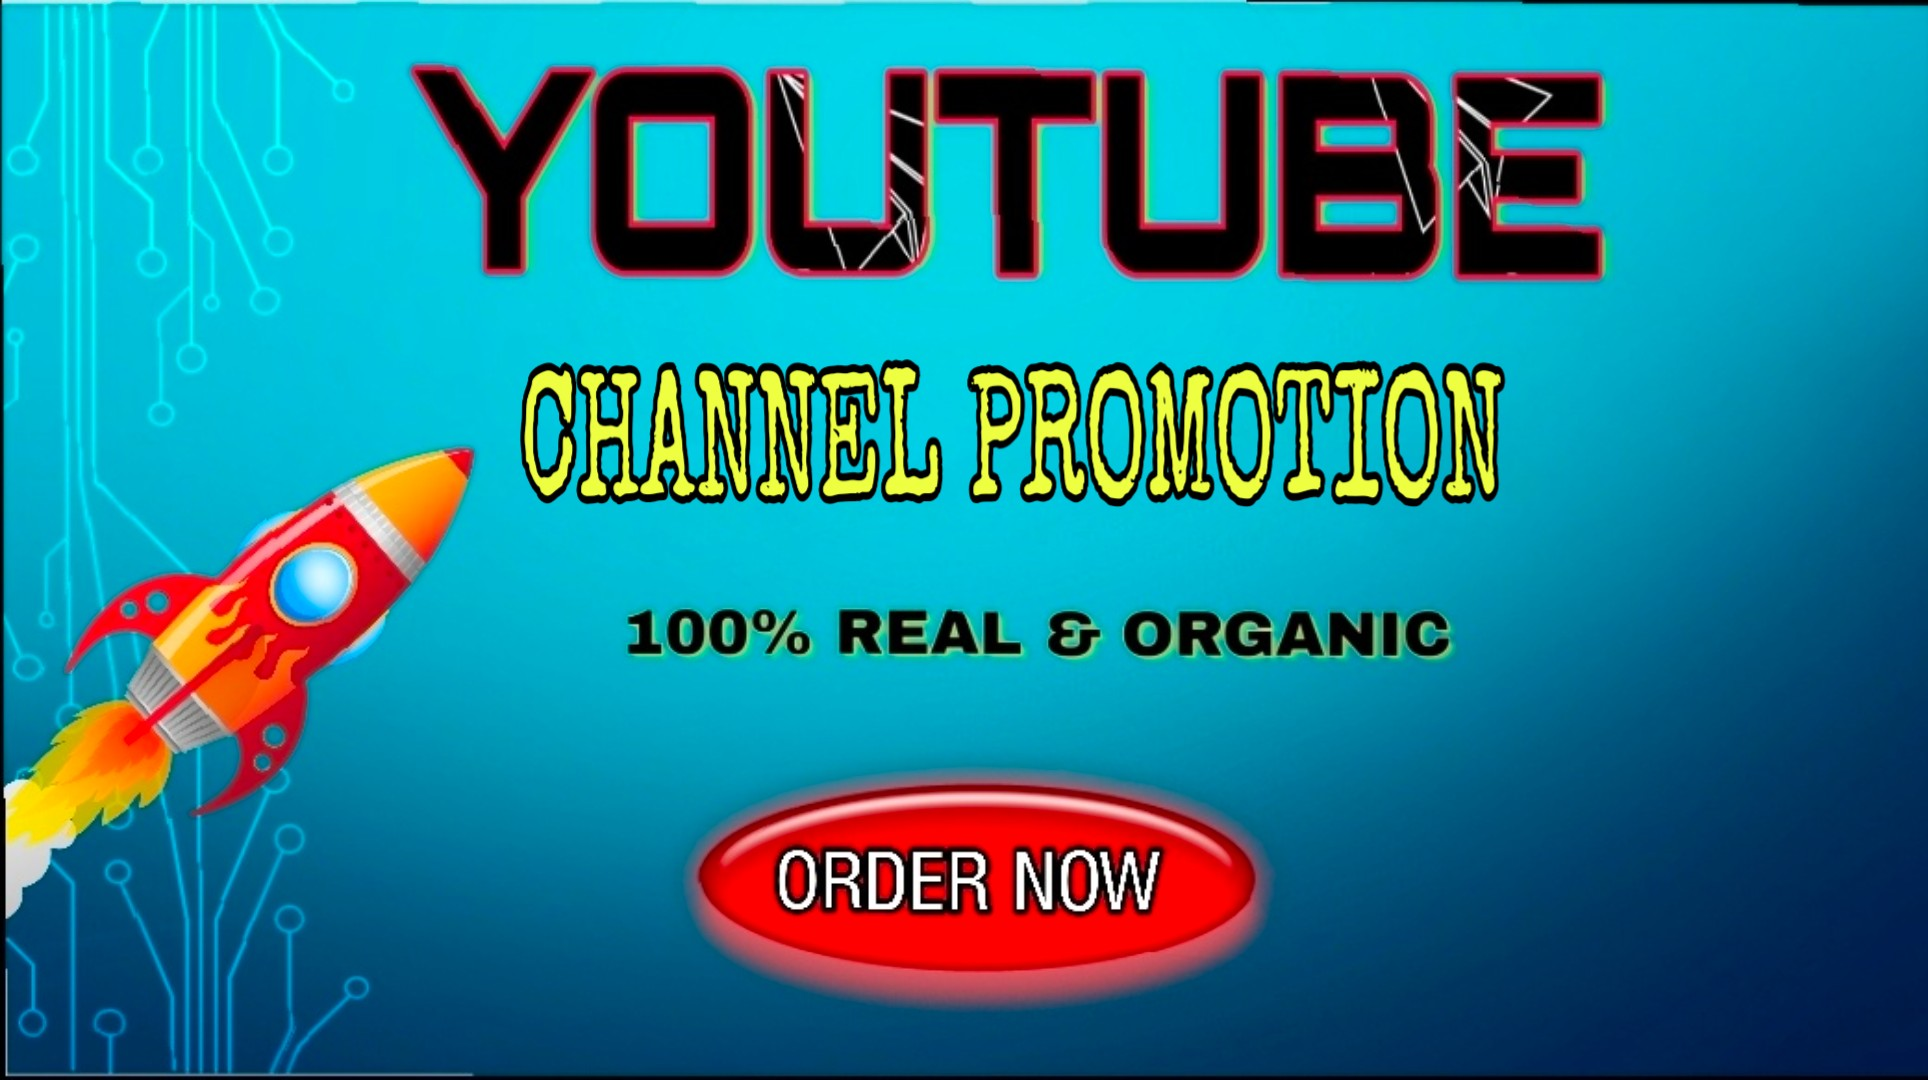 High Quality Channel Promotion Social Media Marketing